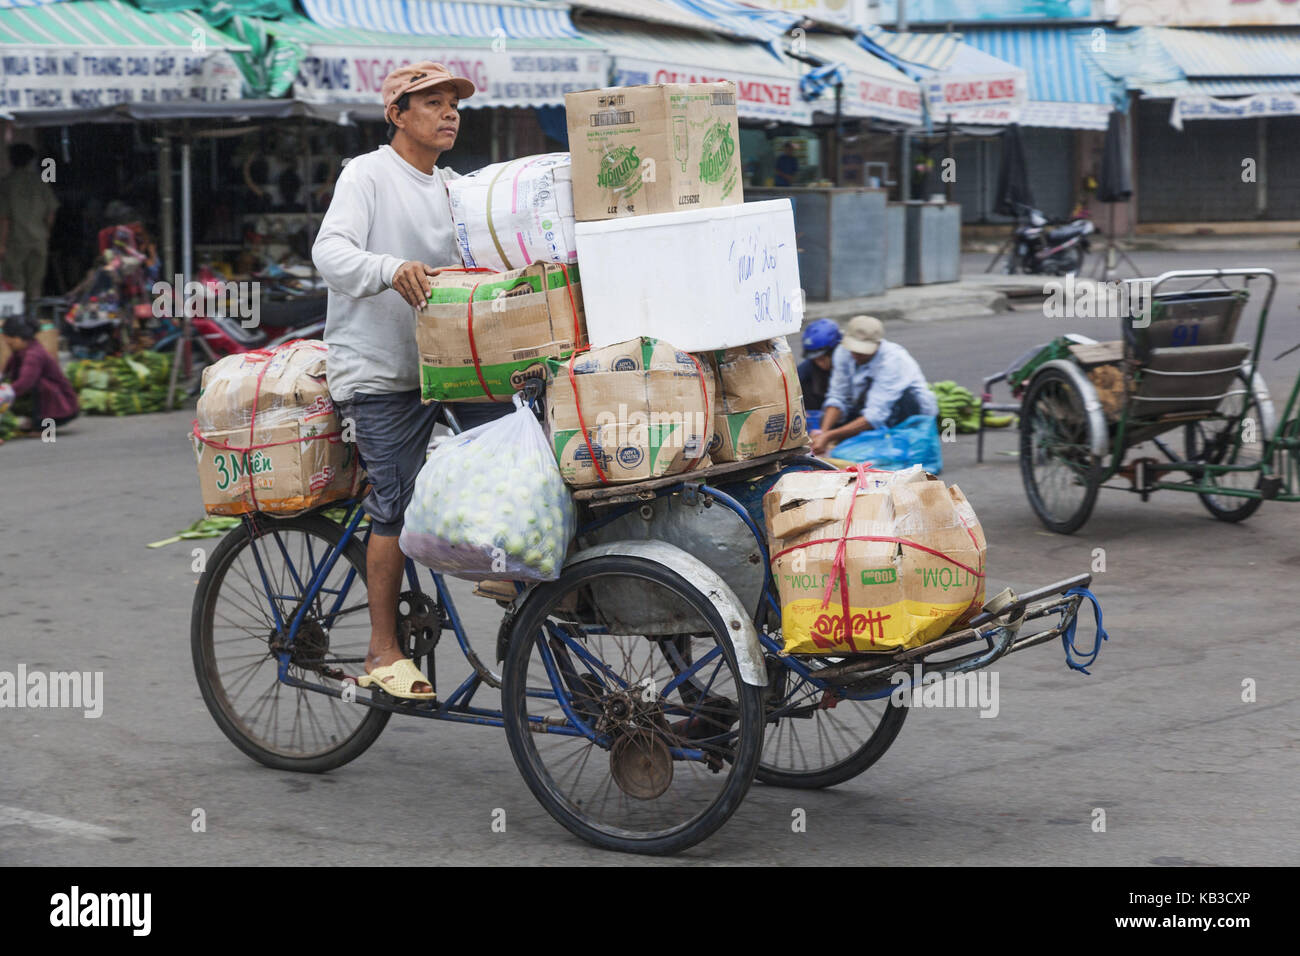 Vietnam, Nha Trang, central market Cho Dam, man carries goods on fully charged tricycle, - Stock Image